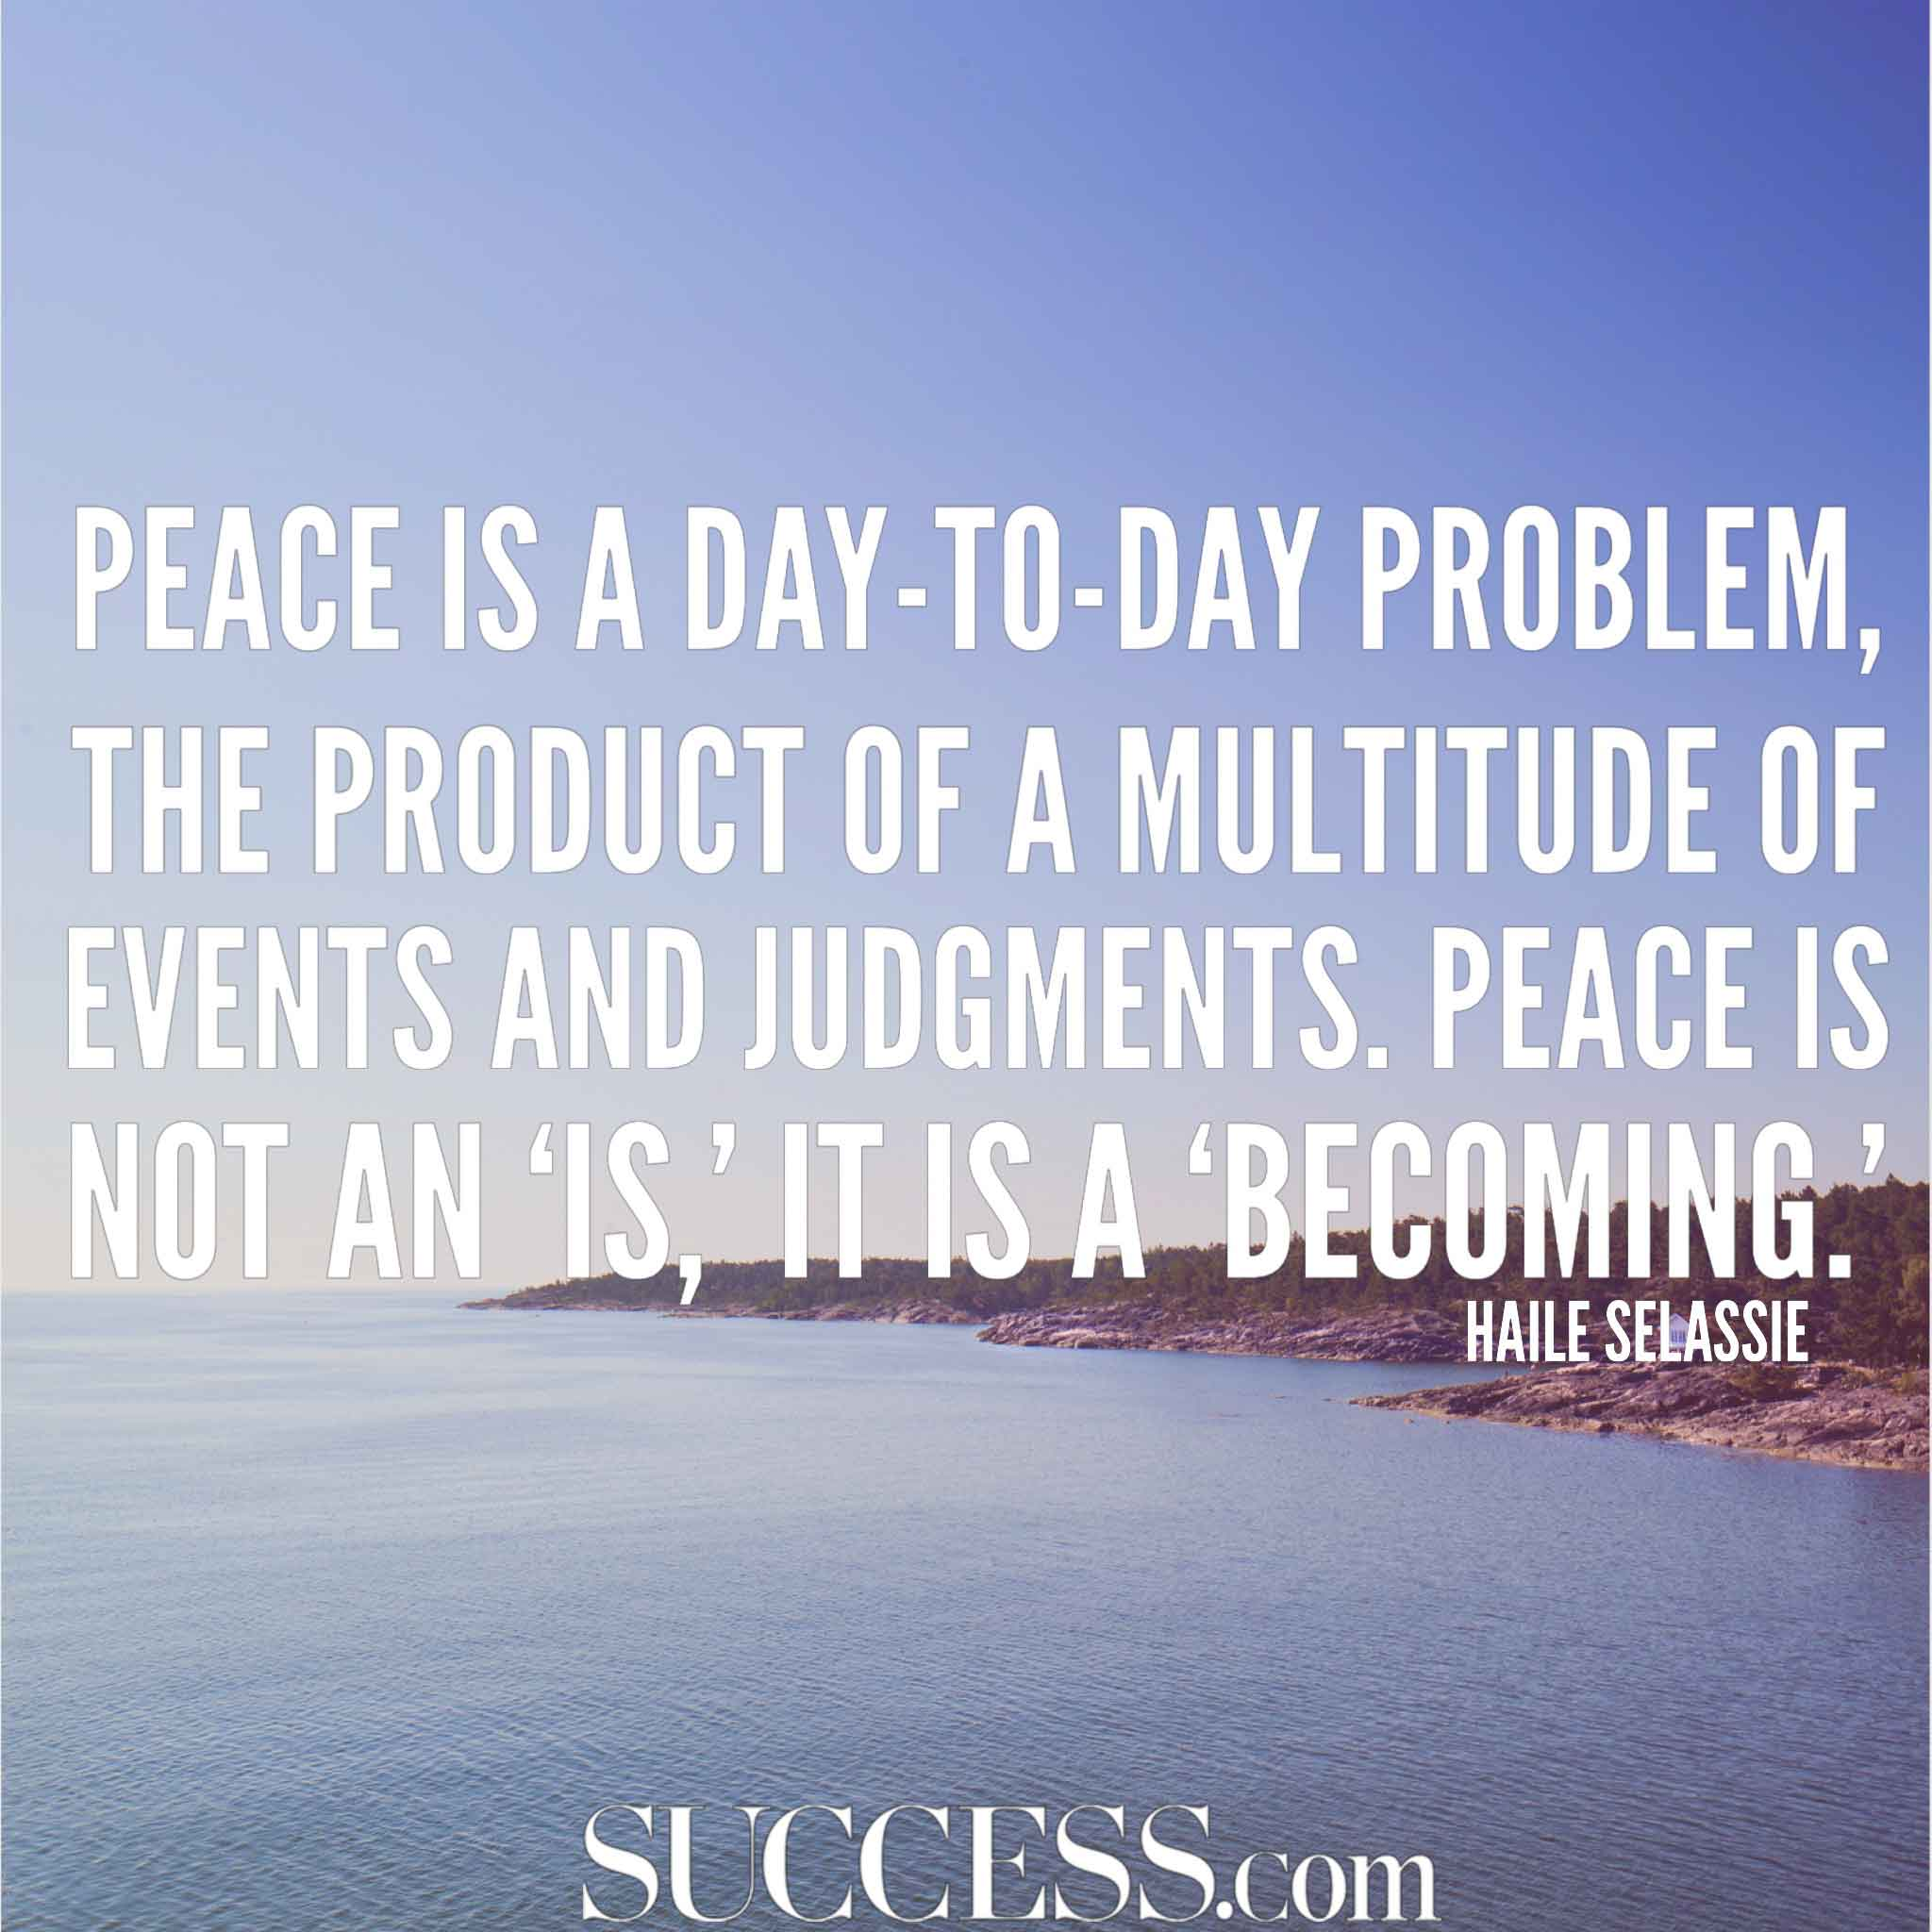 Inner Peace Quotes | 17 Quotes About Finding Inner Peace